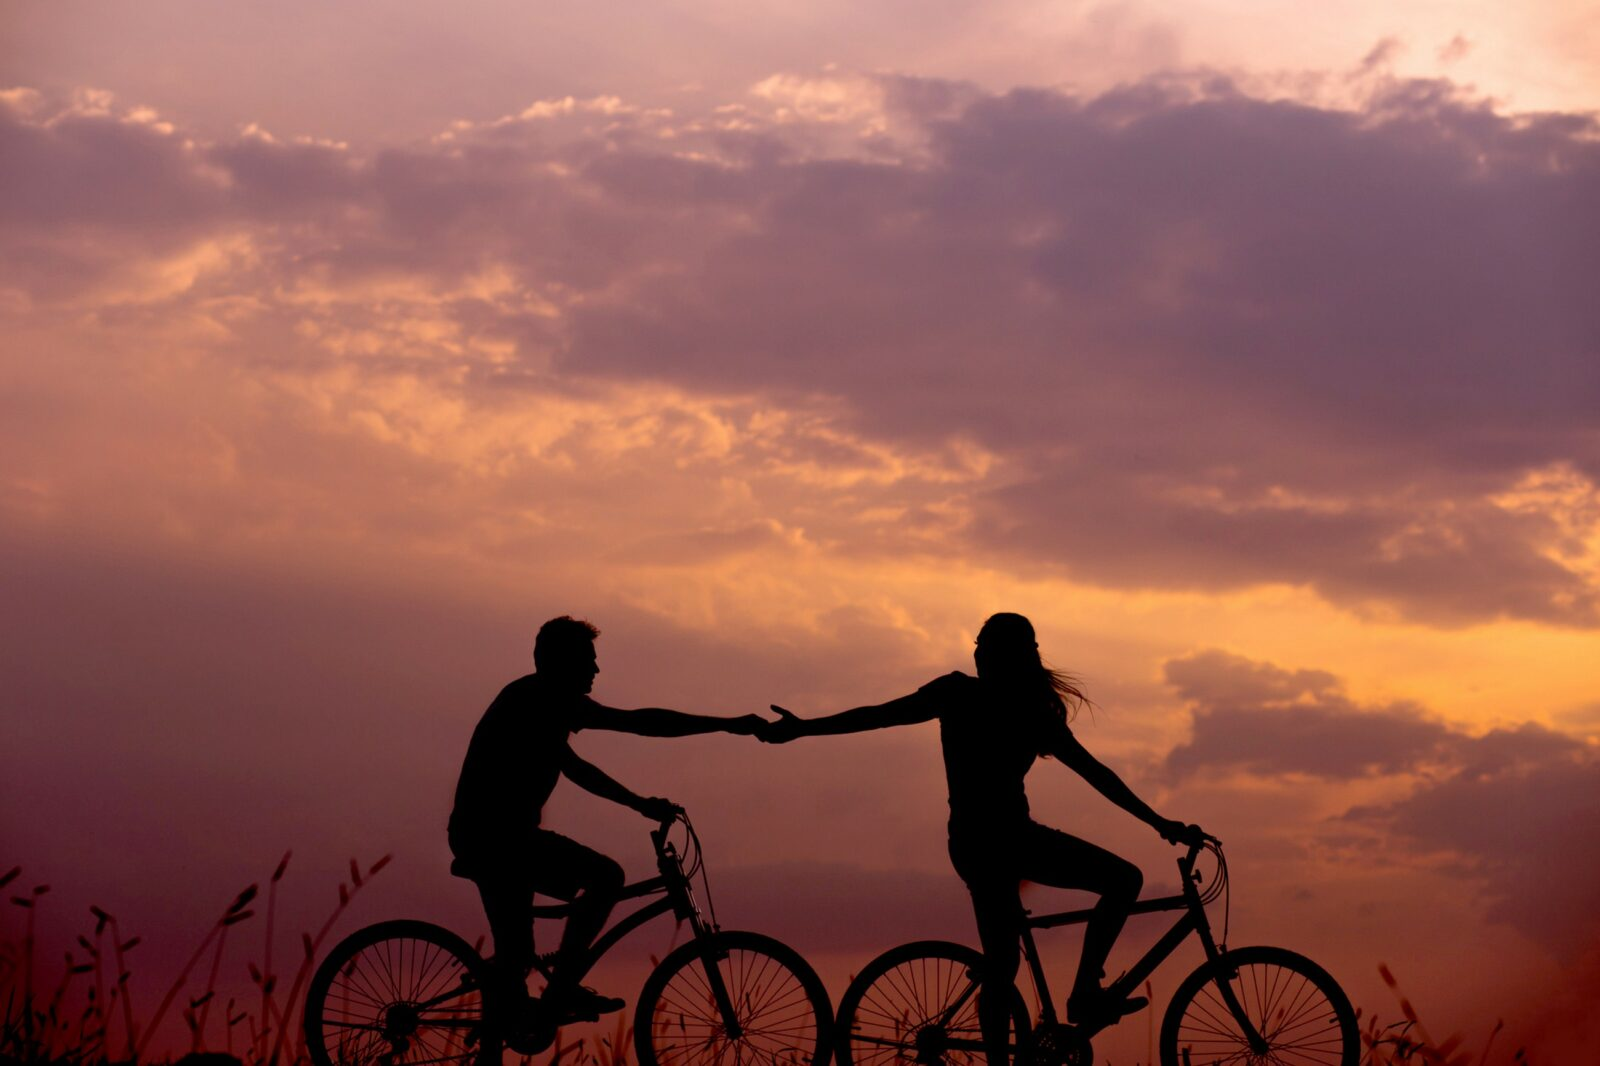 Sunset, two bike riders silhouetted in the foreground. The lead lady is reching back and grasping hands with the male. Romantic.